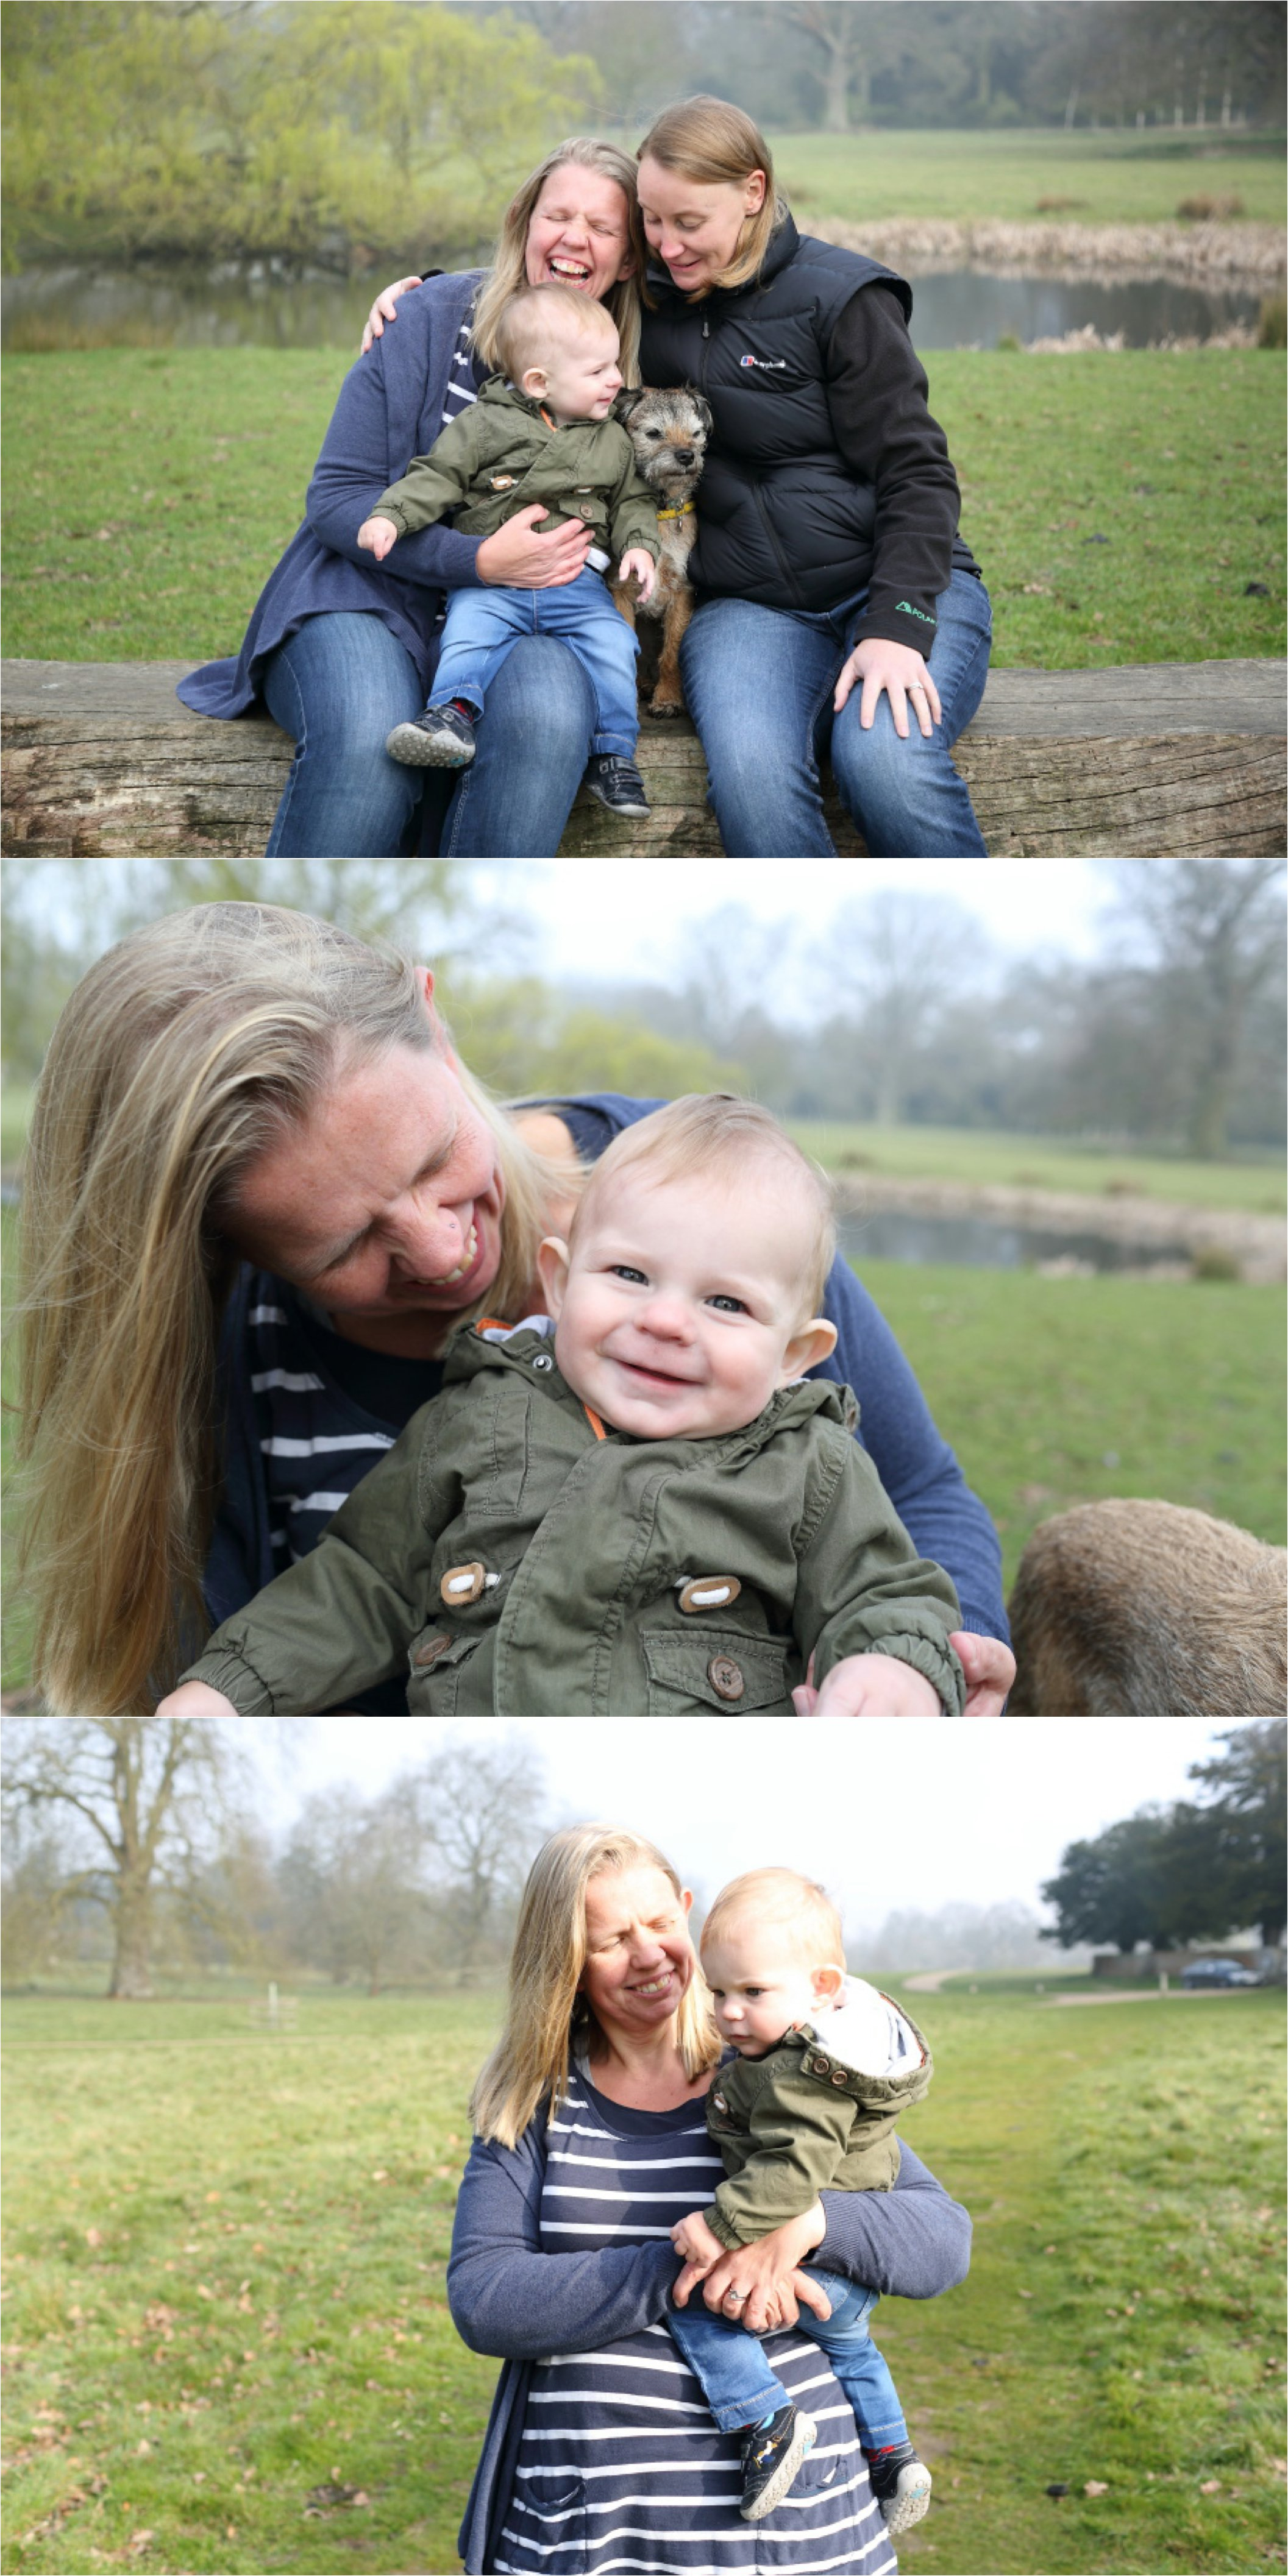 fun relaxed family photo session at Ickworth, Suffolk